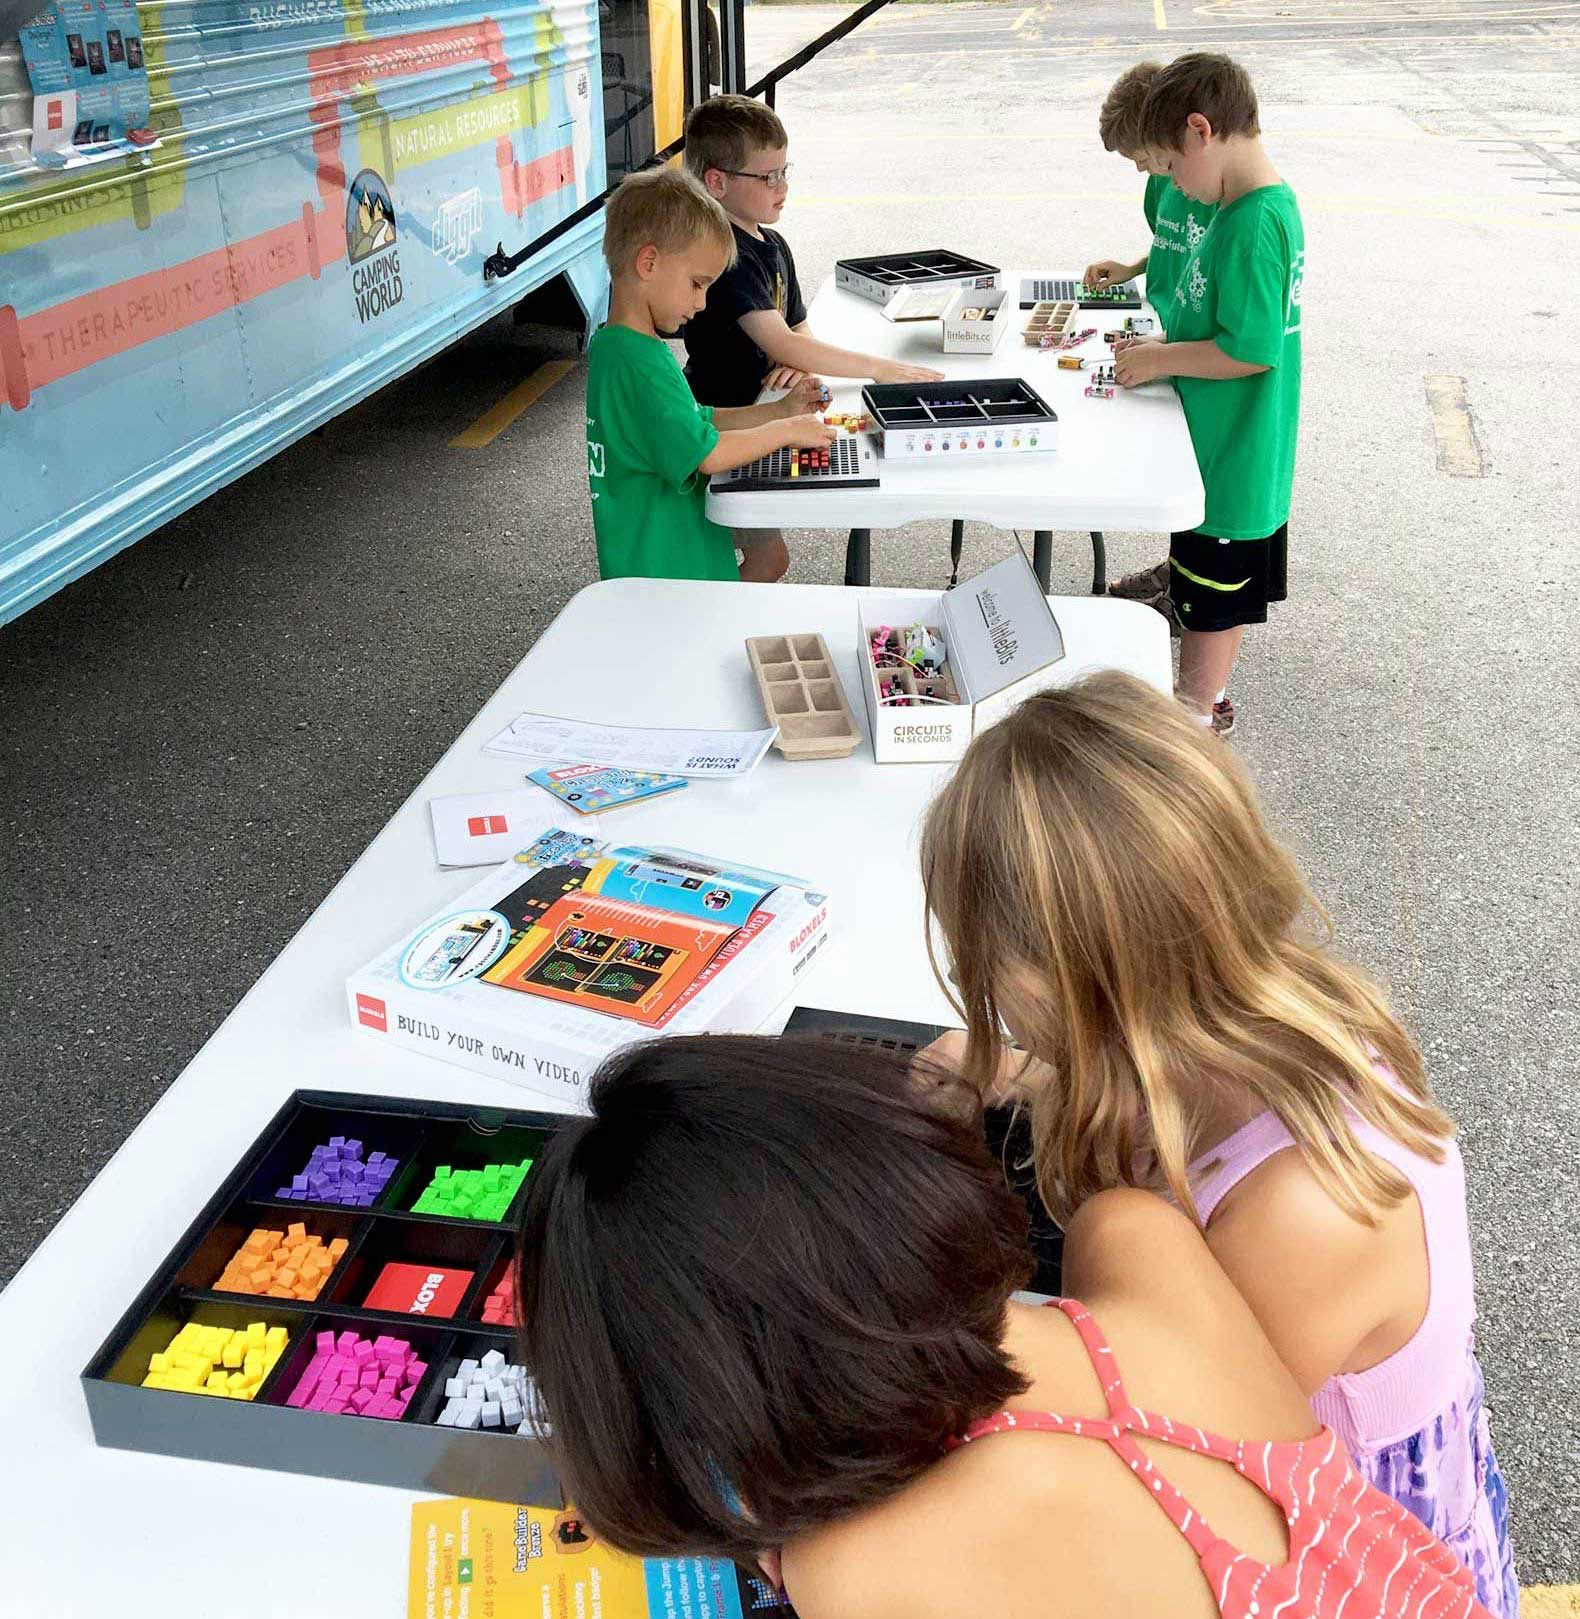 The bus gives students a chance to design video game characters using Bloxels (shown here). It also has a 3D printer and virtual reality glasses.